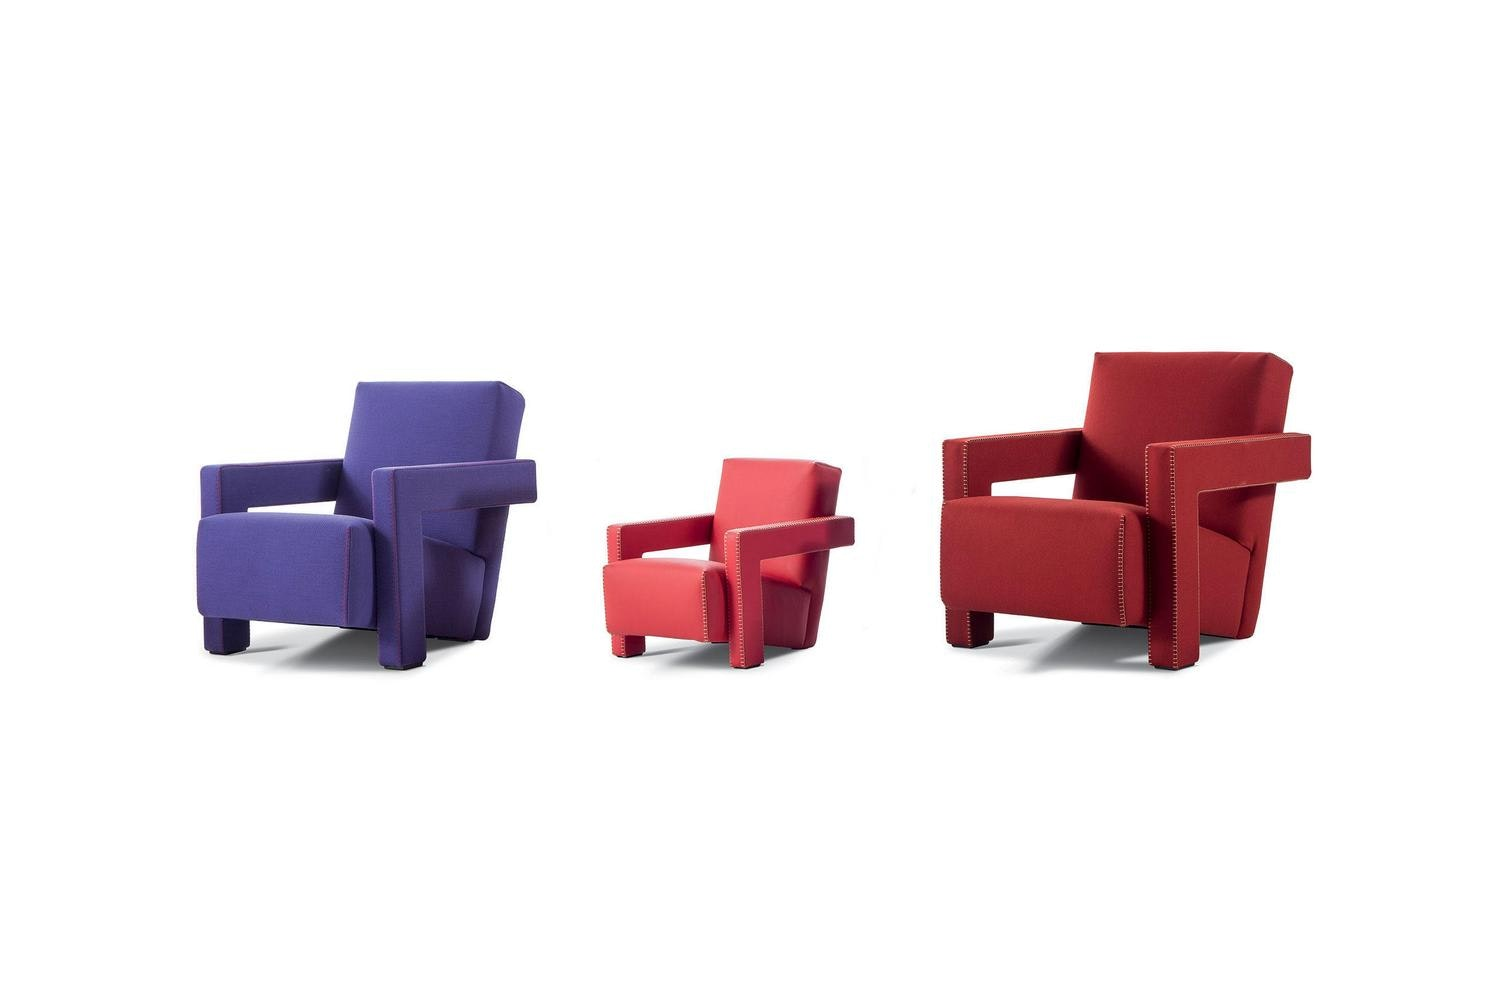 637 Utrecht XL Armchair by Gerrit Thomas Rietveld for Cassina